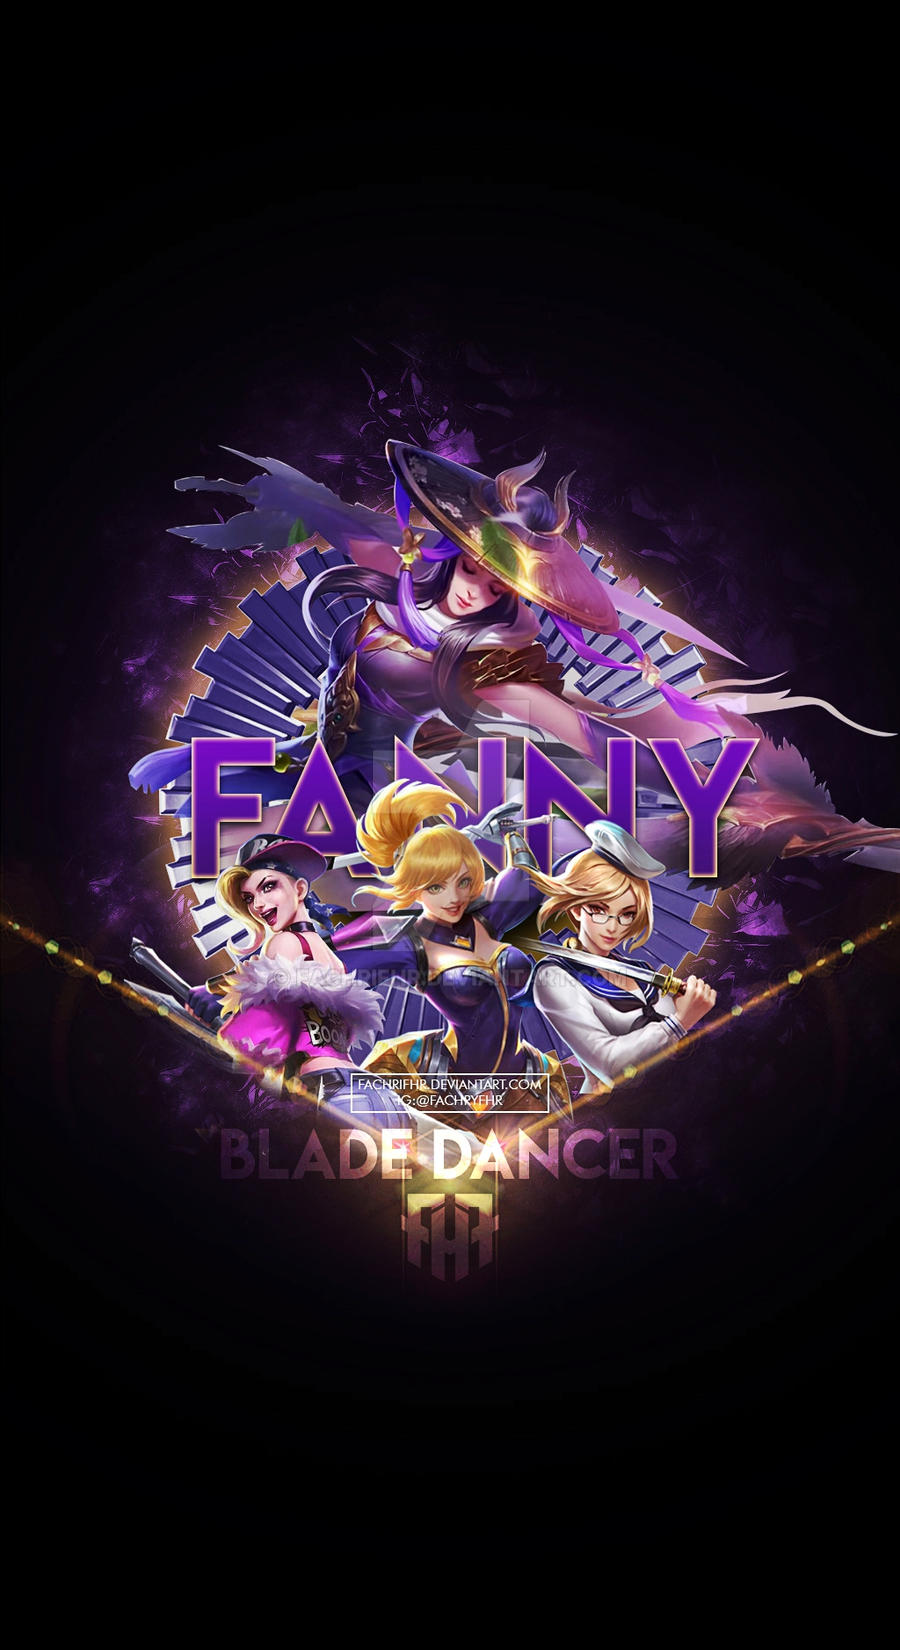 Wallpaper Phone Special Fanny Blade Dancer By Fachrifhr On Deviantart